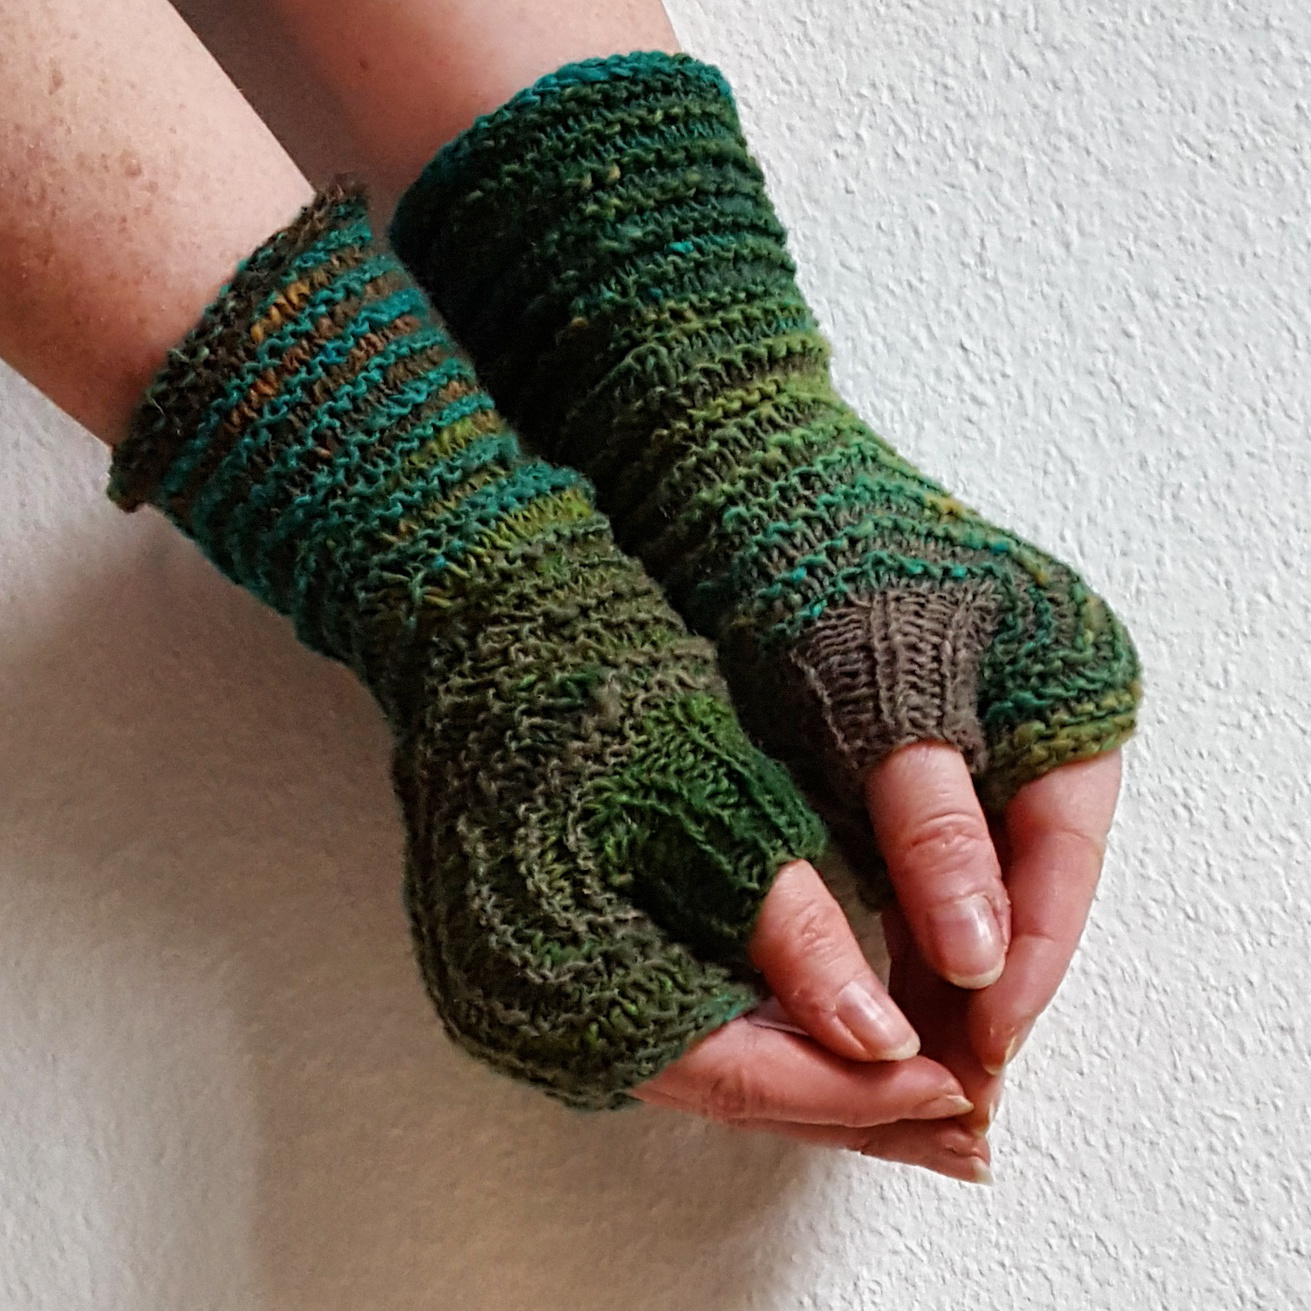 Fingerless Gloves Knitting Pattern Circular Needles Magnificent Ideas